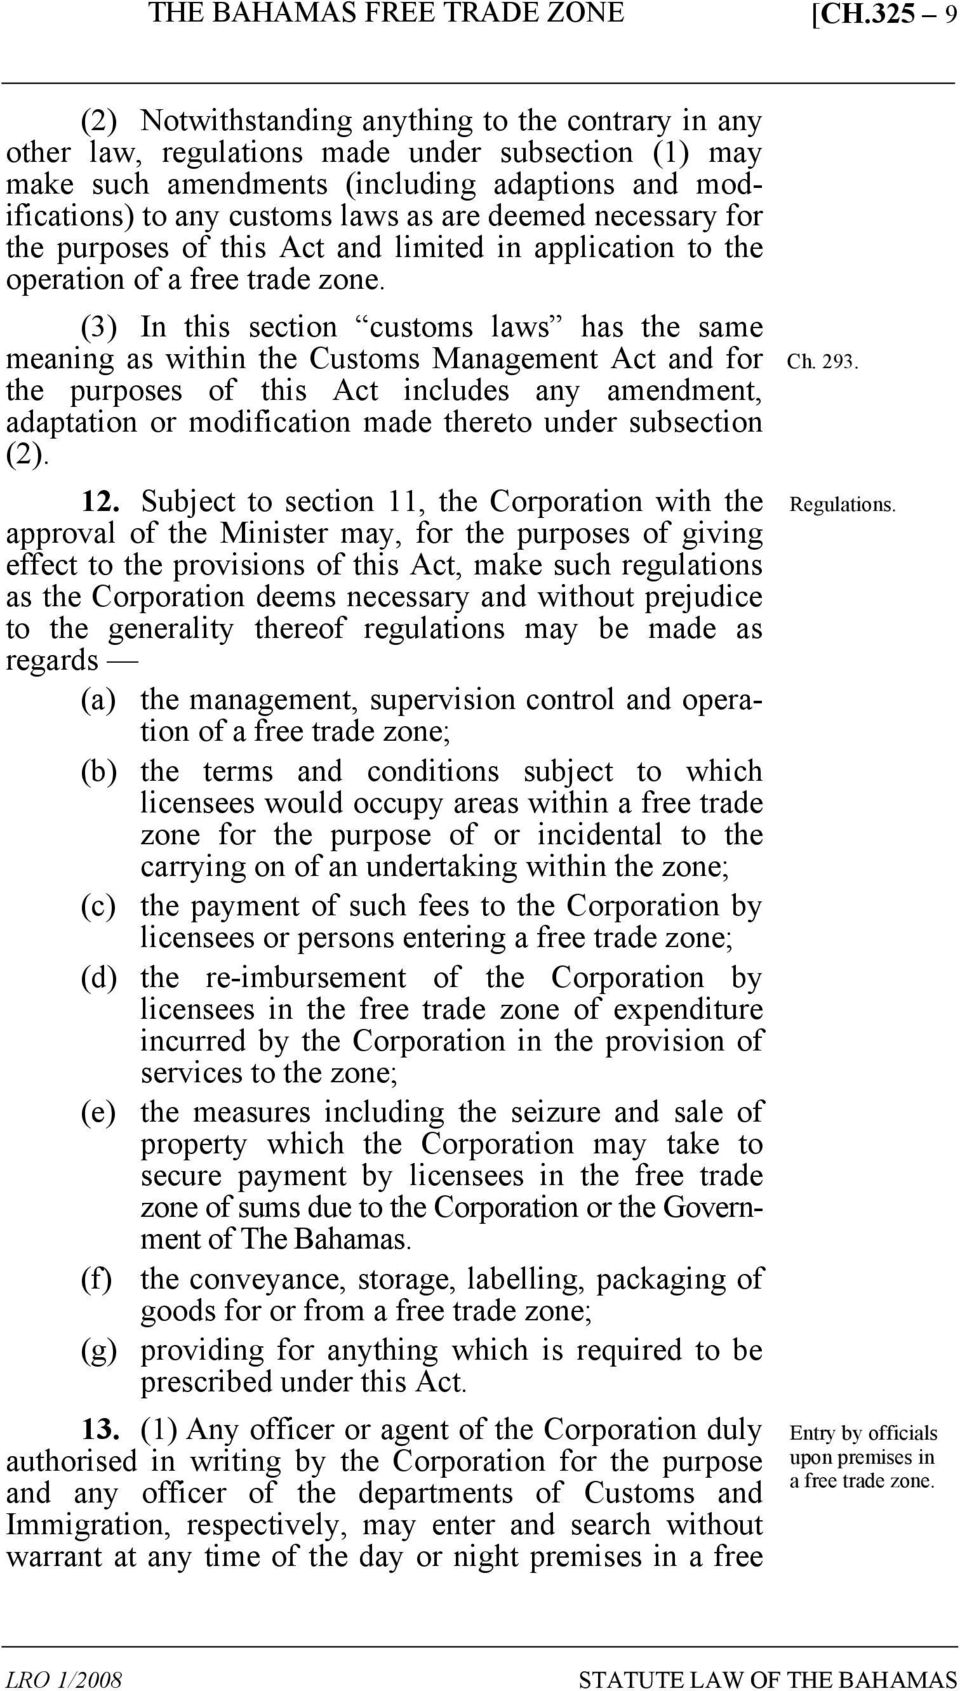 (3) In this section customs laws has the same meaning as within the Customs Management Act and for the purposes of this Act includes any amendment, adaptation or modification made thereto under